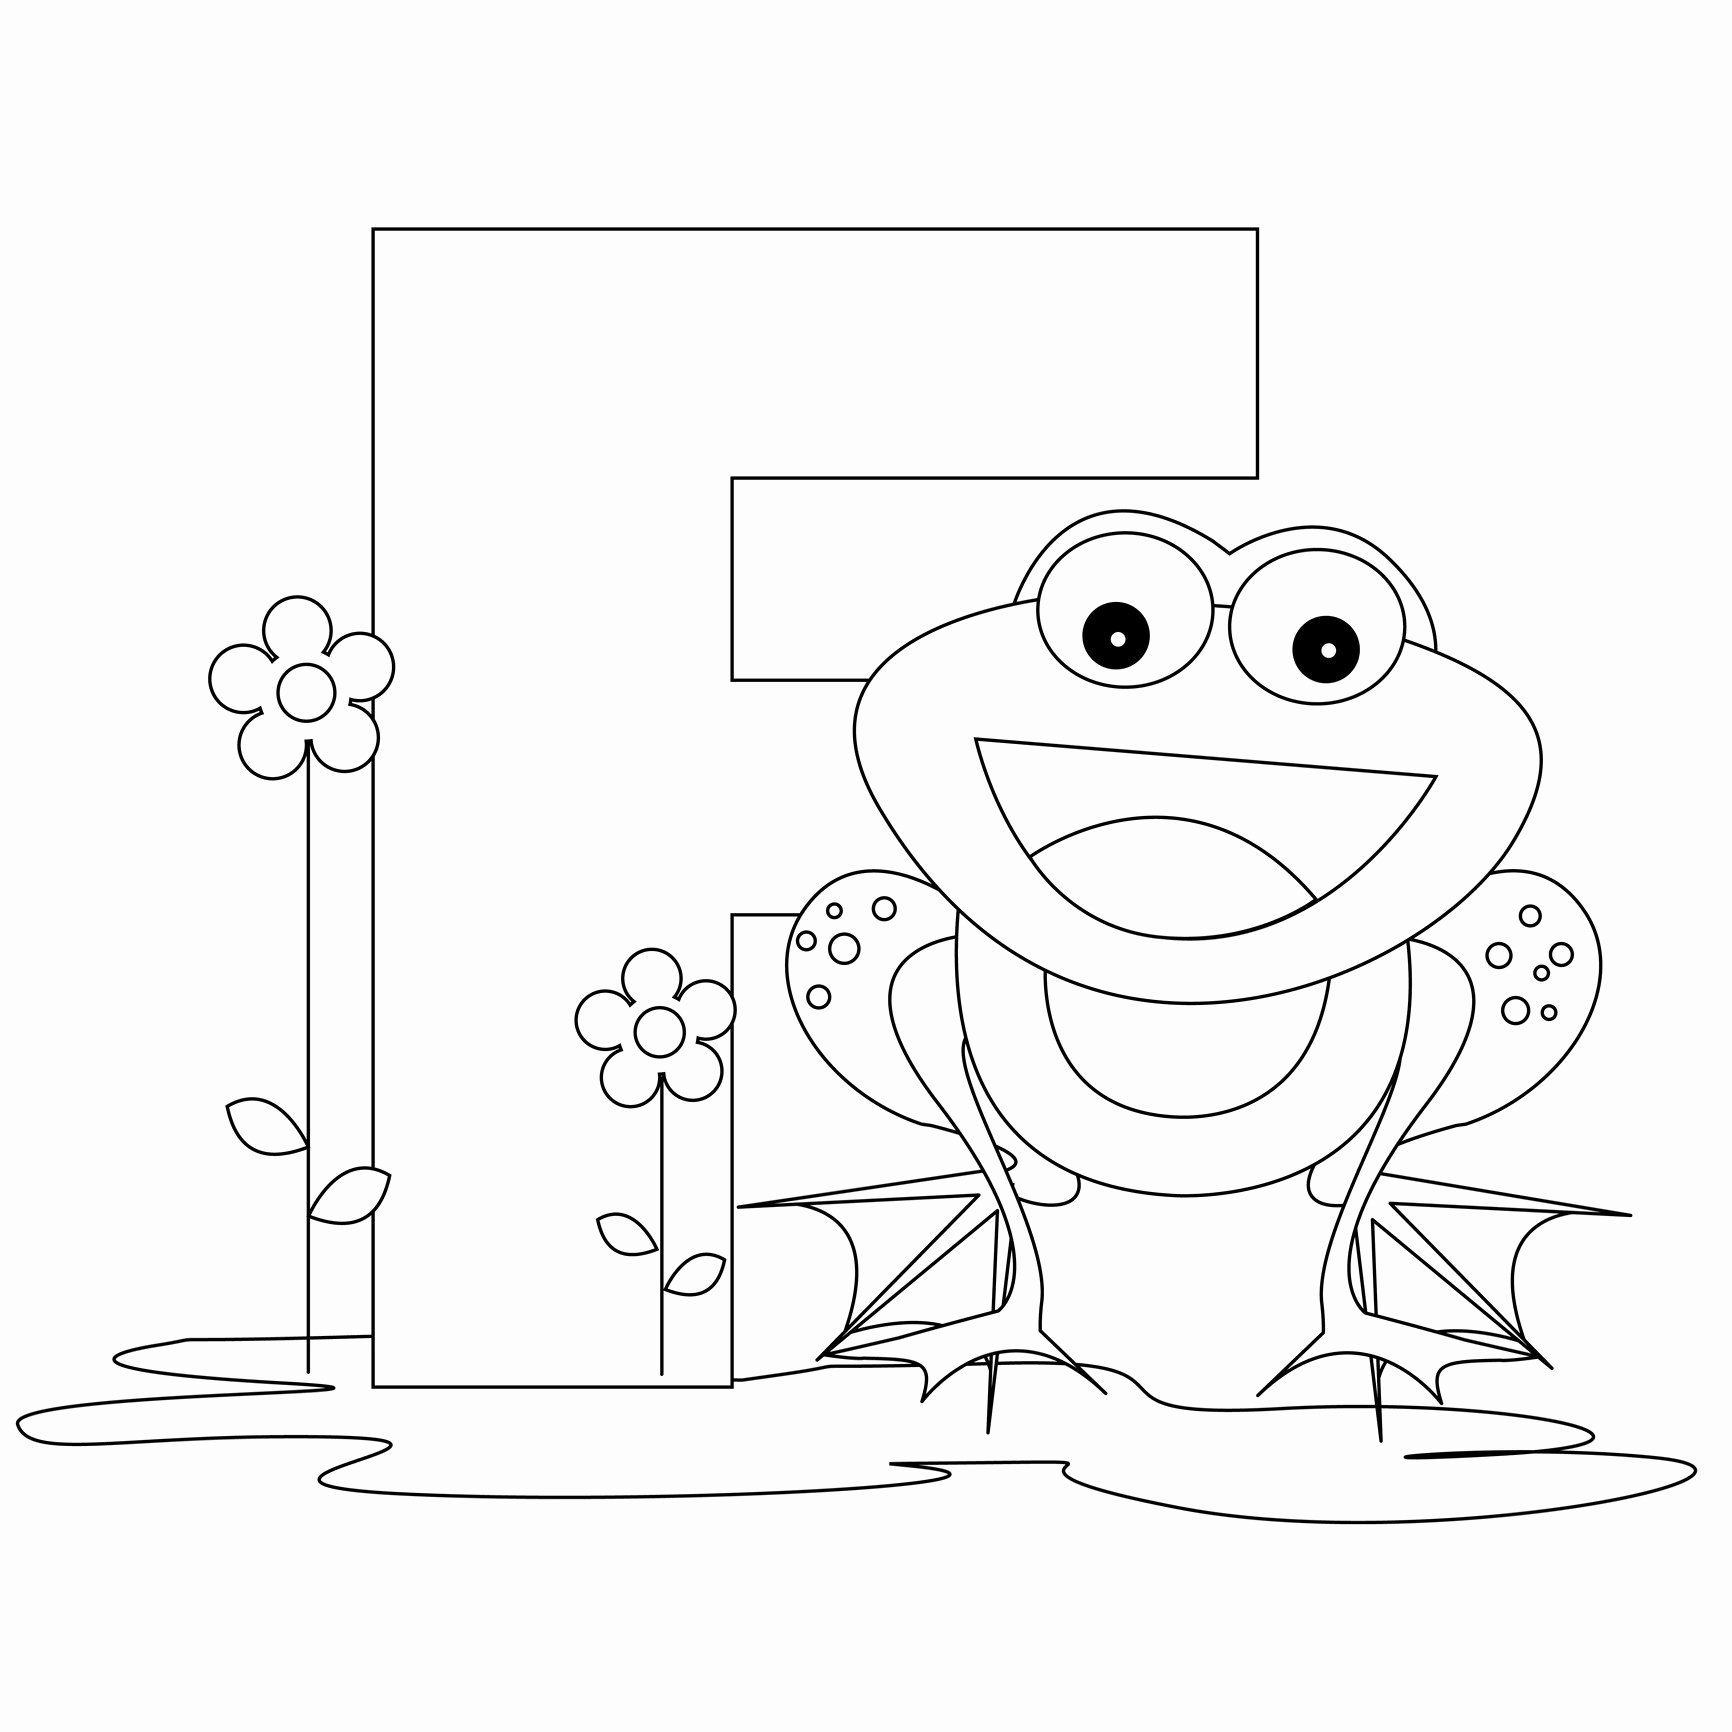 Alphabet Letters to Print Free Unique Free Printable Alphabet Coloring Pages for Kids Best